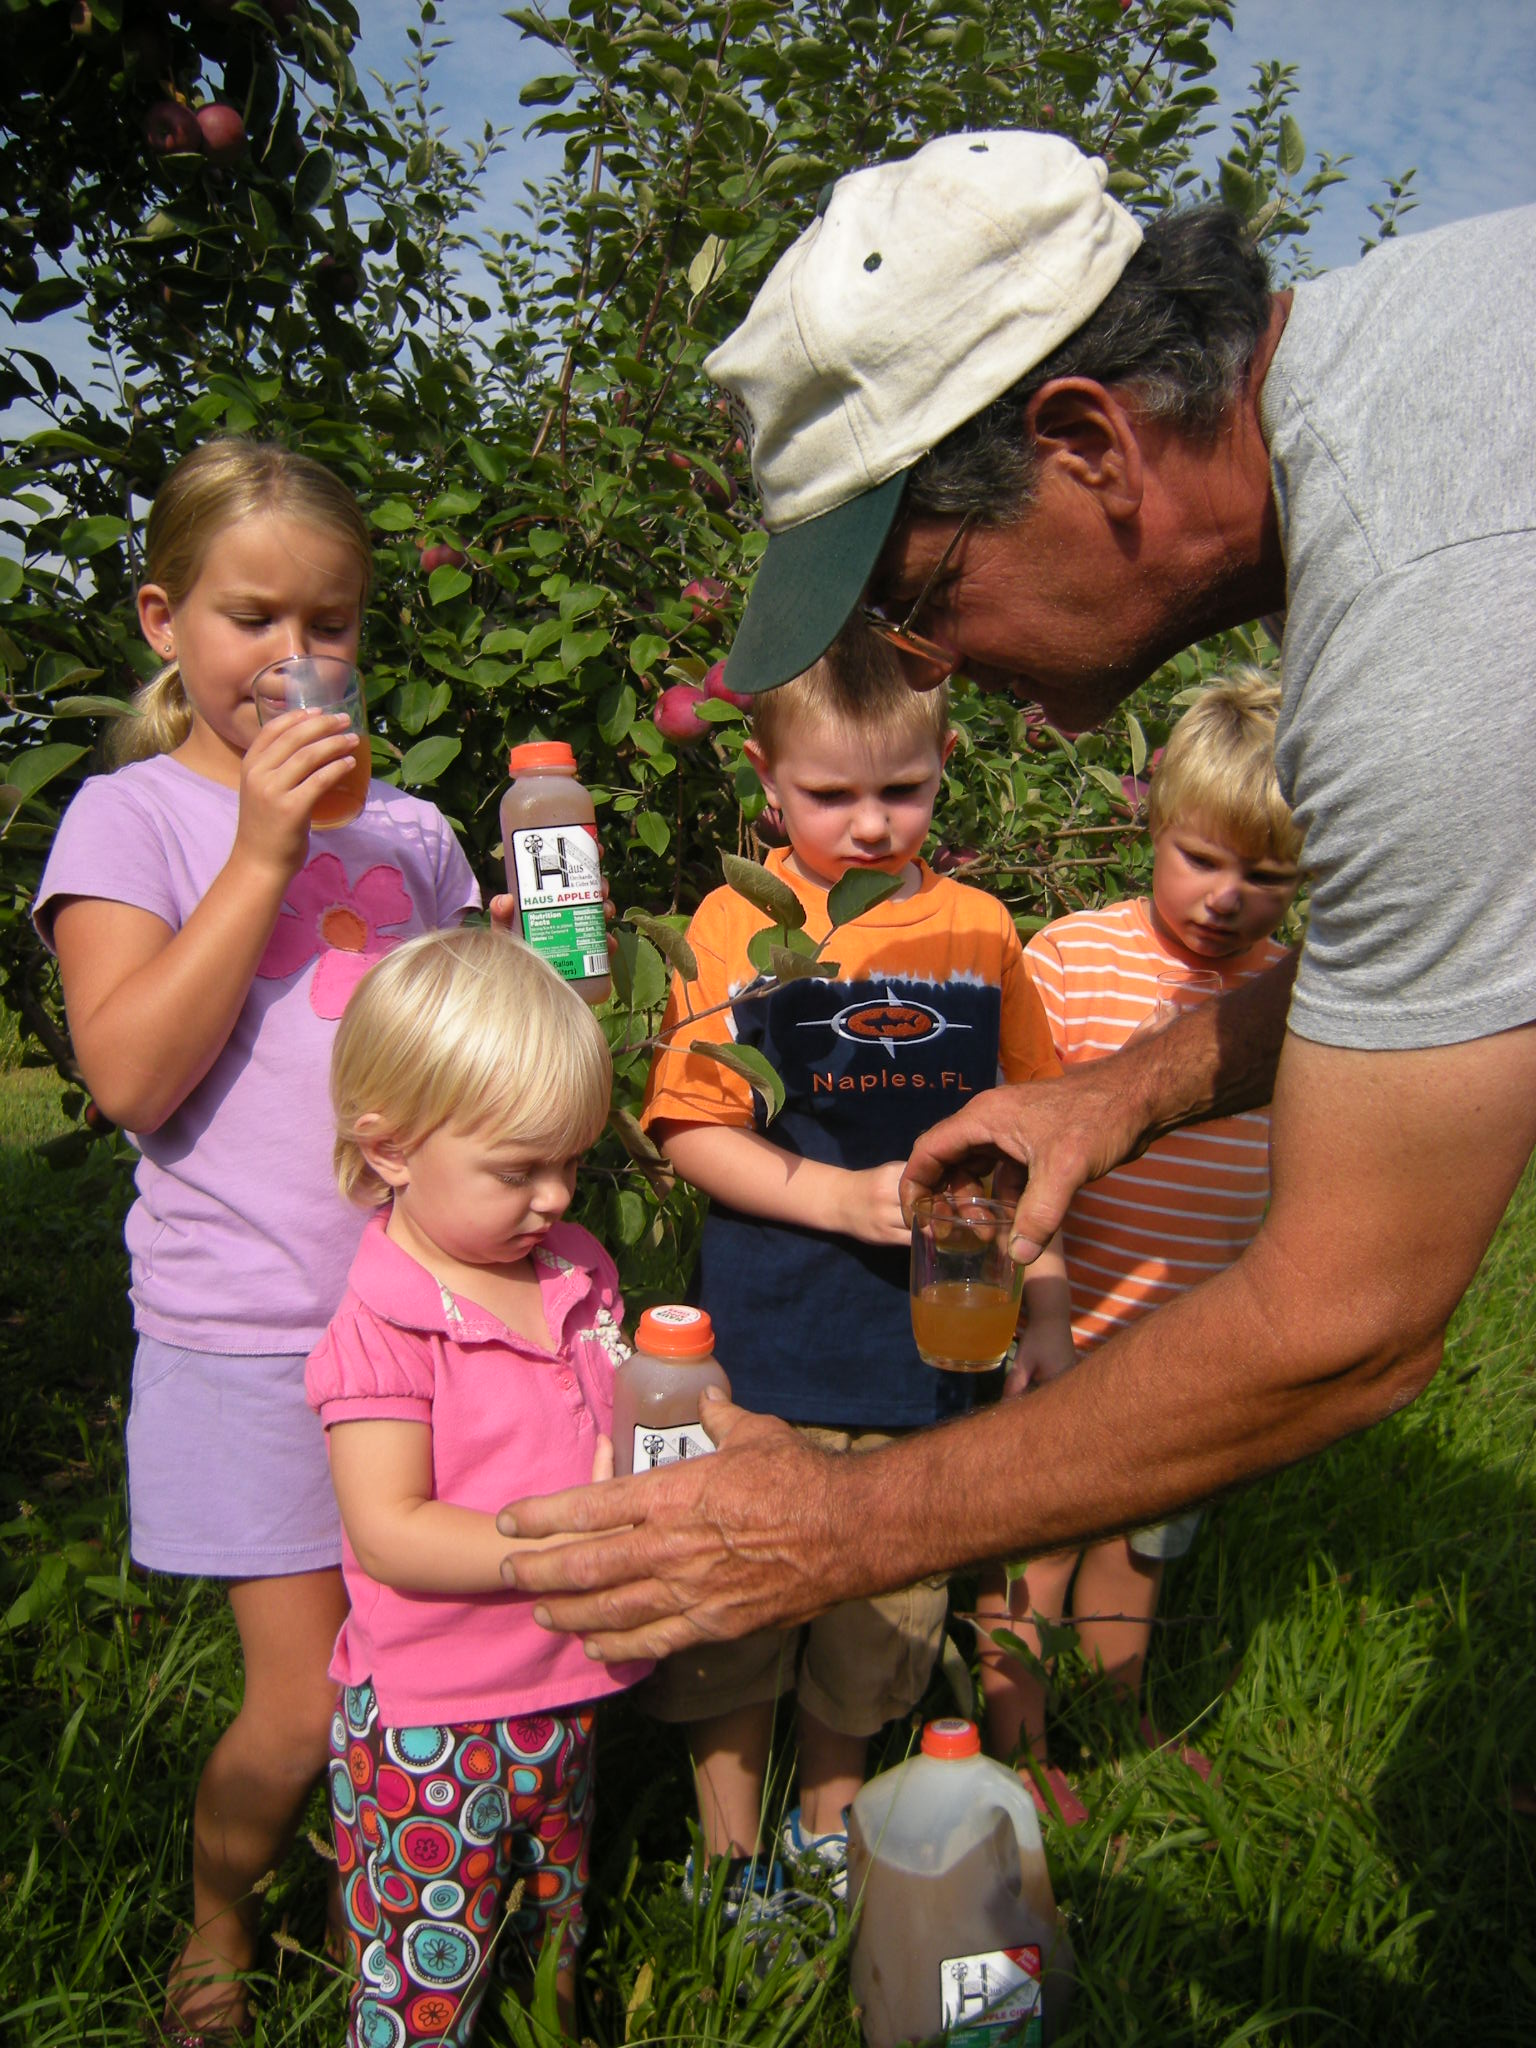 Kids tasting the cider